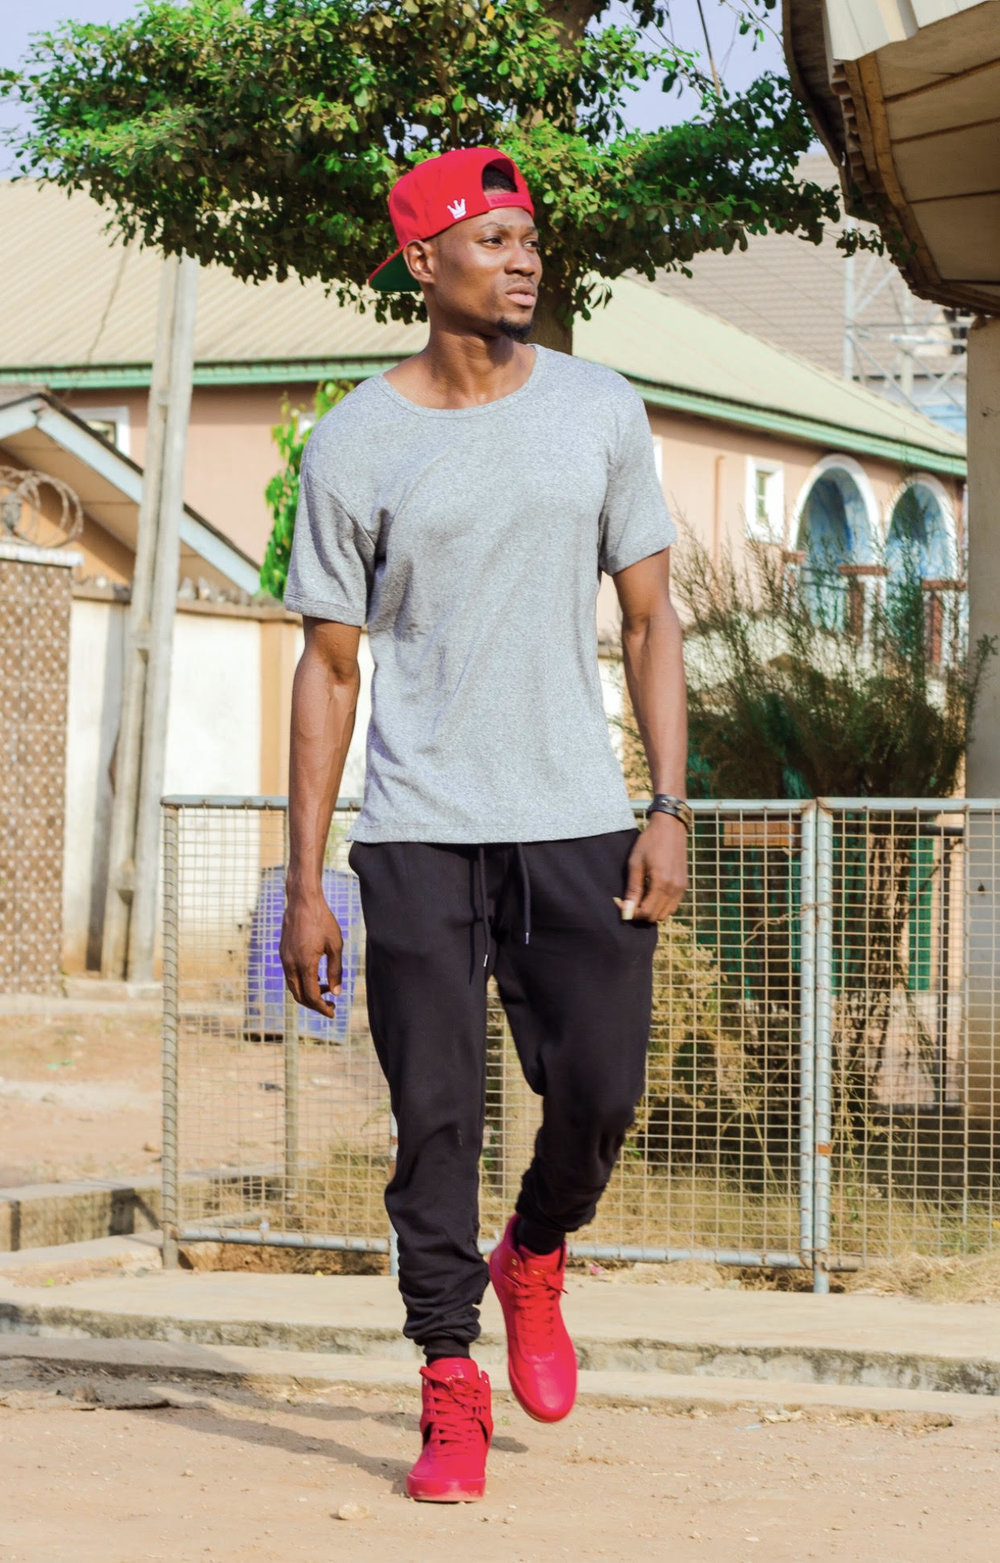 6coJohn  for  Heed Magazine ::    Wearing H&M Relaxed Tee & Joggers, paired with RED Creative Recreation Shoes and KMD Clothing Cap   Photographer:  Ebiye Wilson Jeke